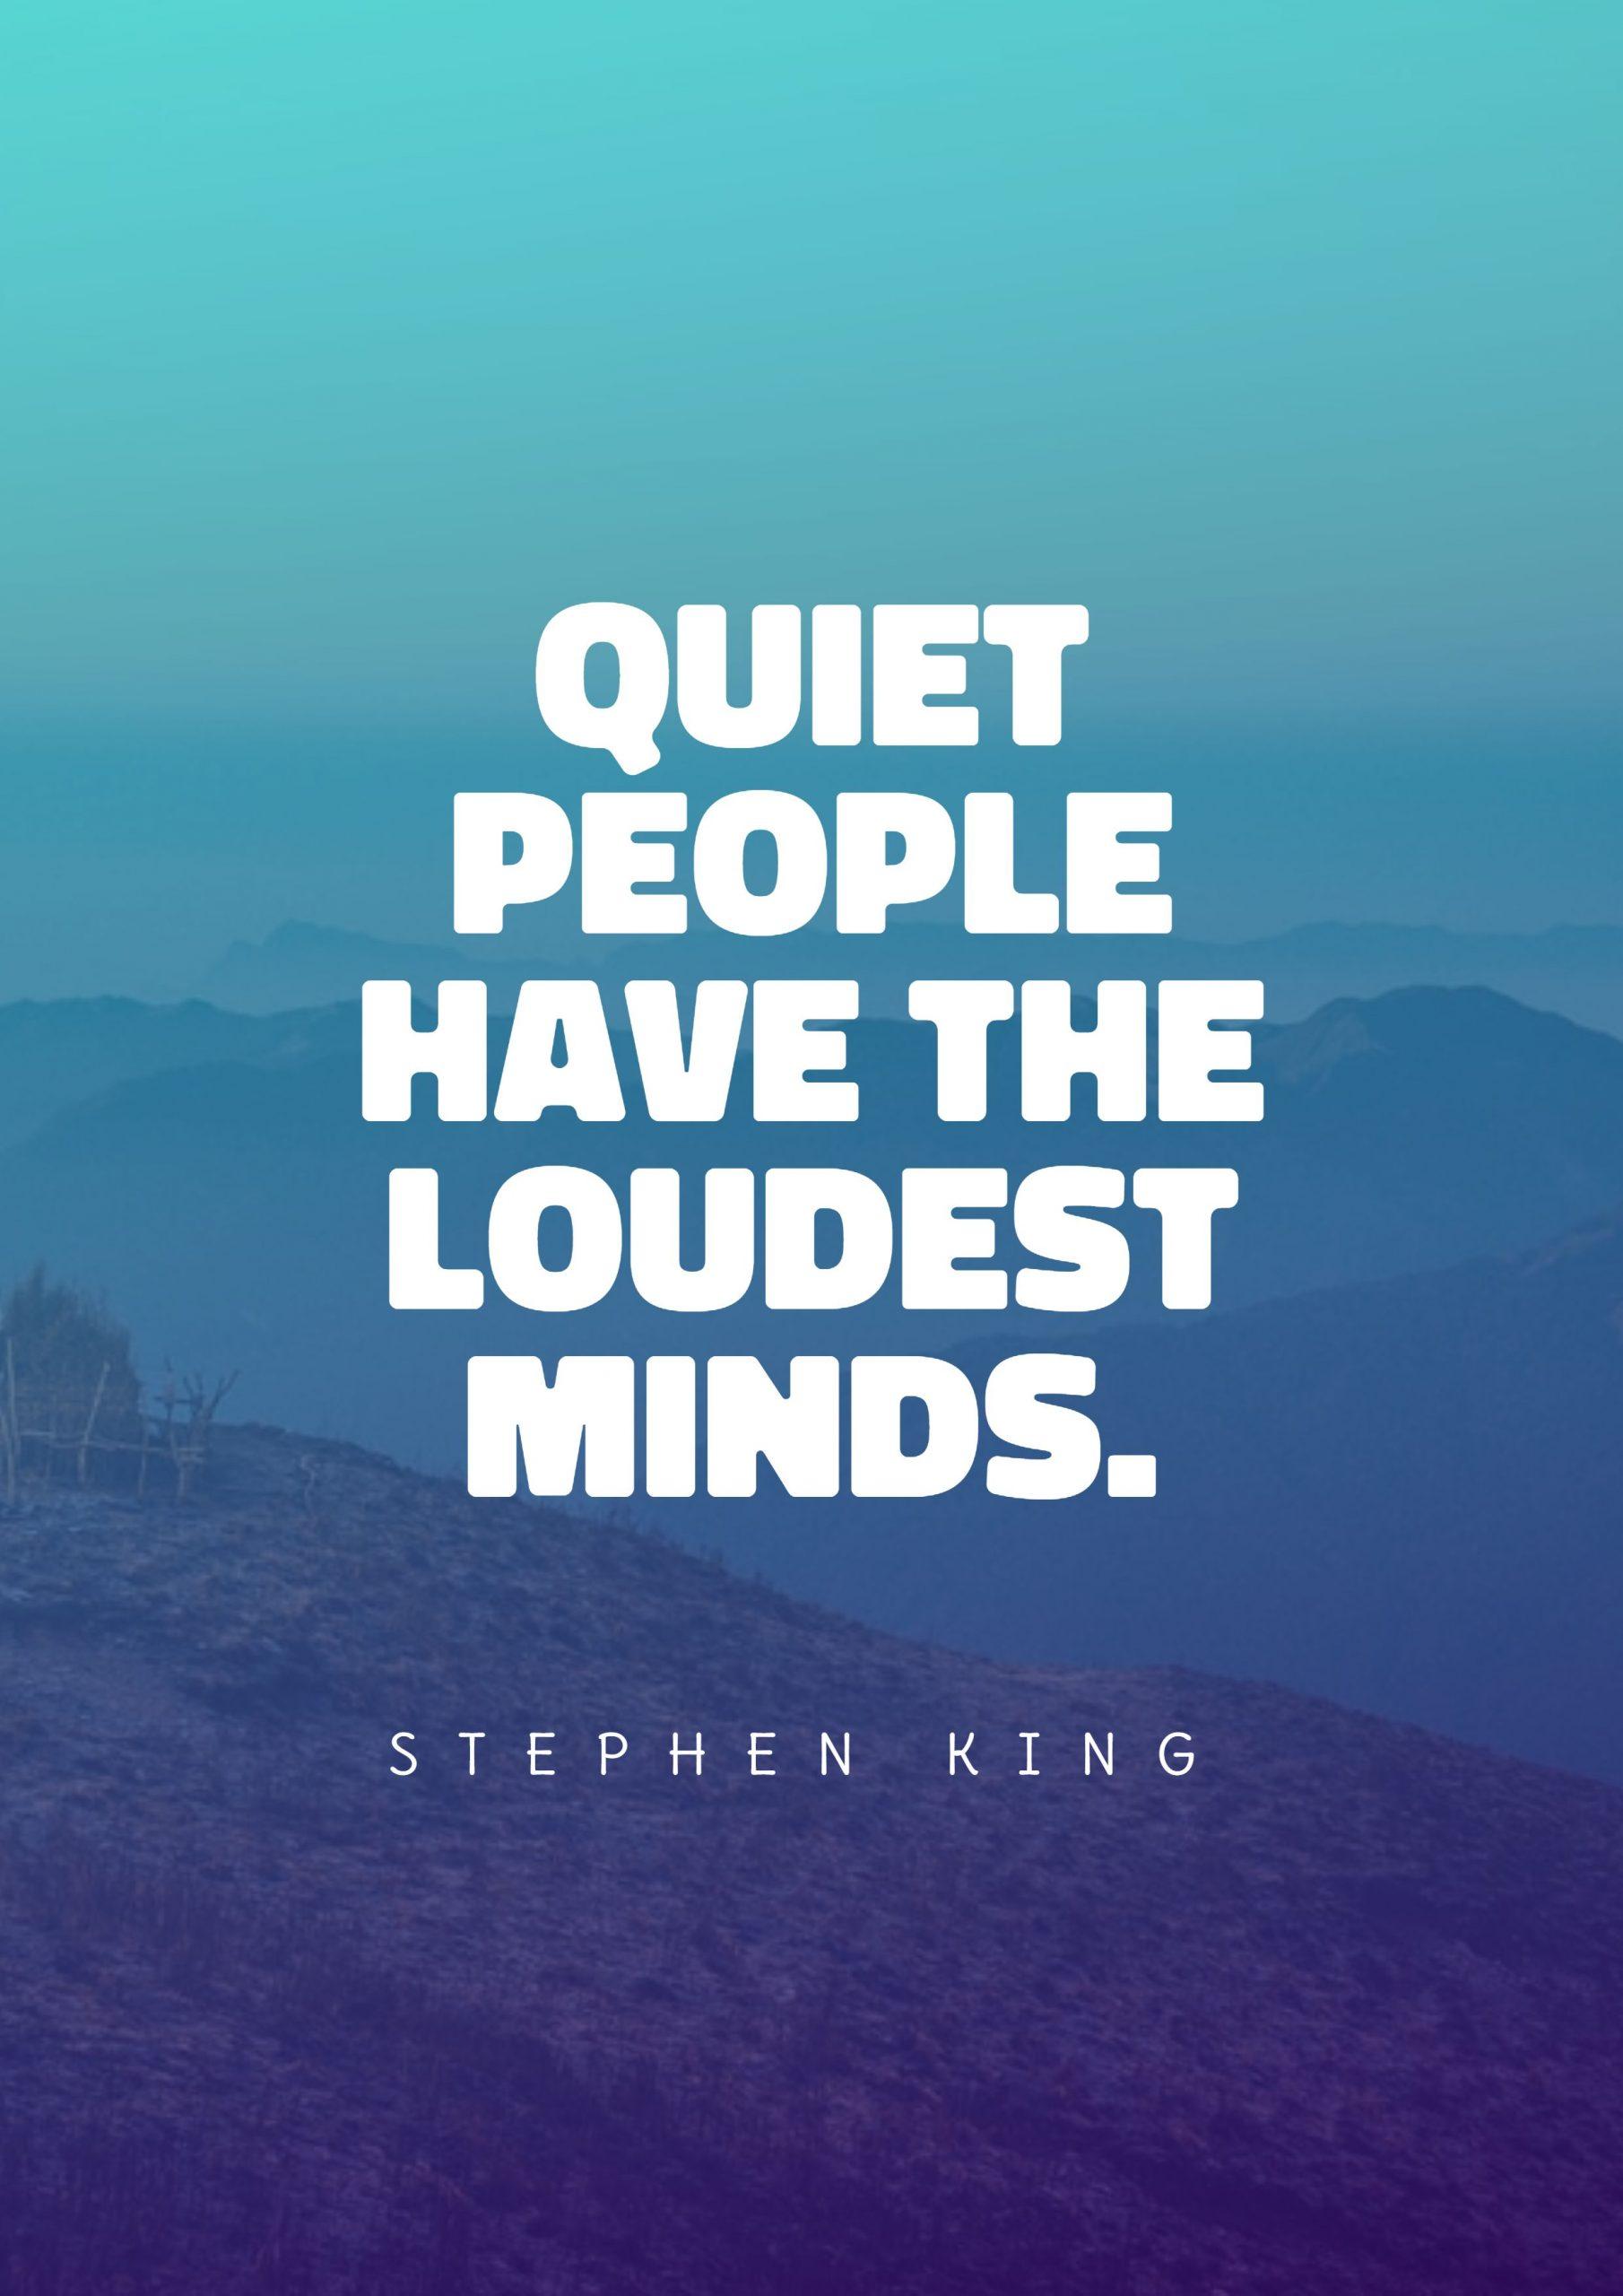 Quotes image of Quiet people have the loudest minds.